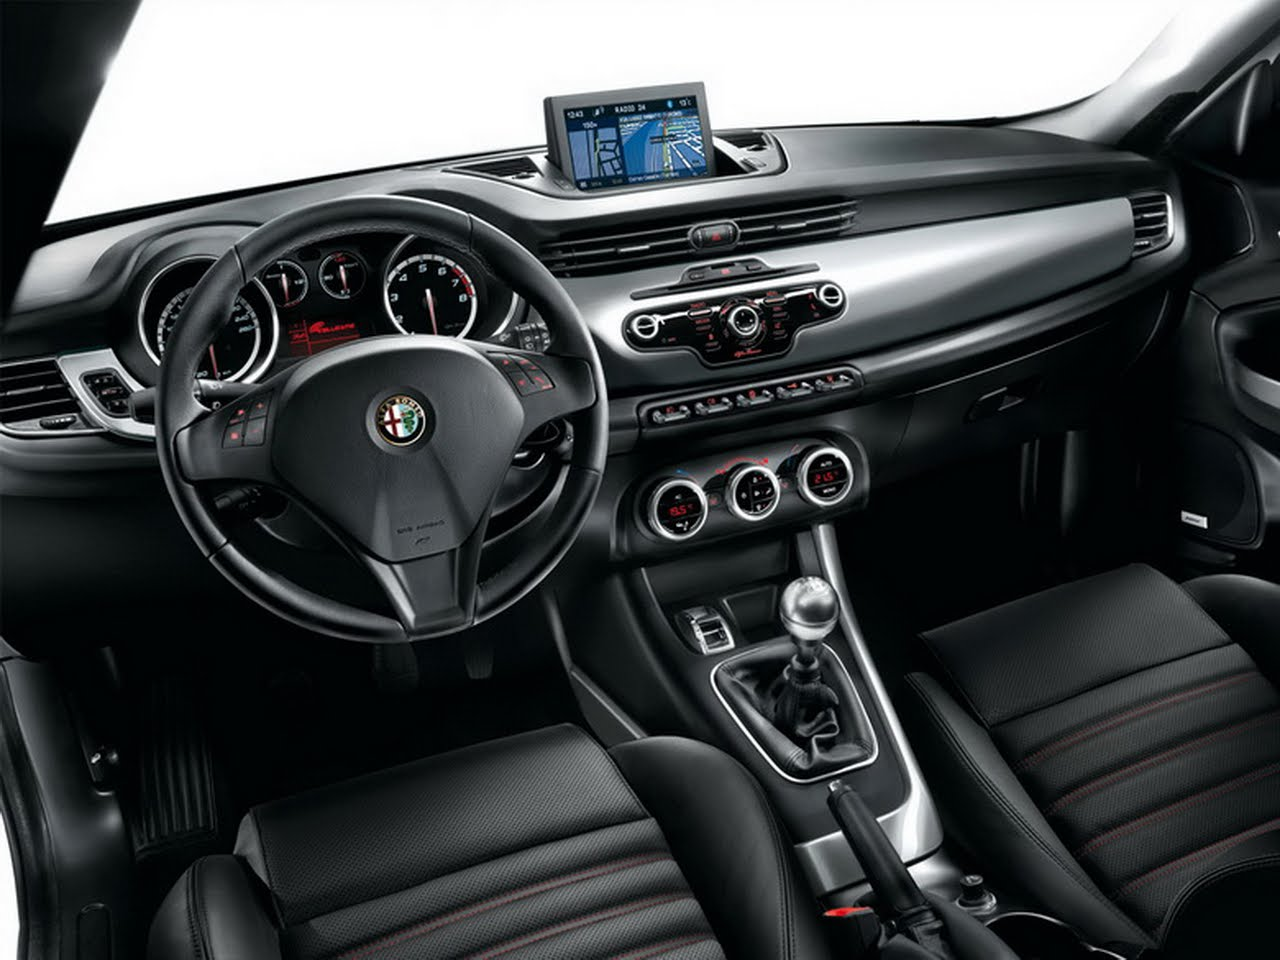 Alfa Giulietta Interieur Alfa Romeo Giulietta 2010 Interior 01 All The Cars